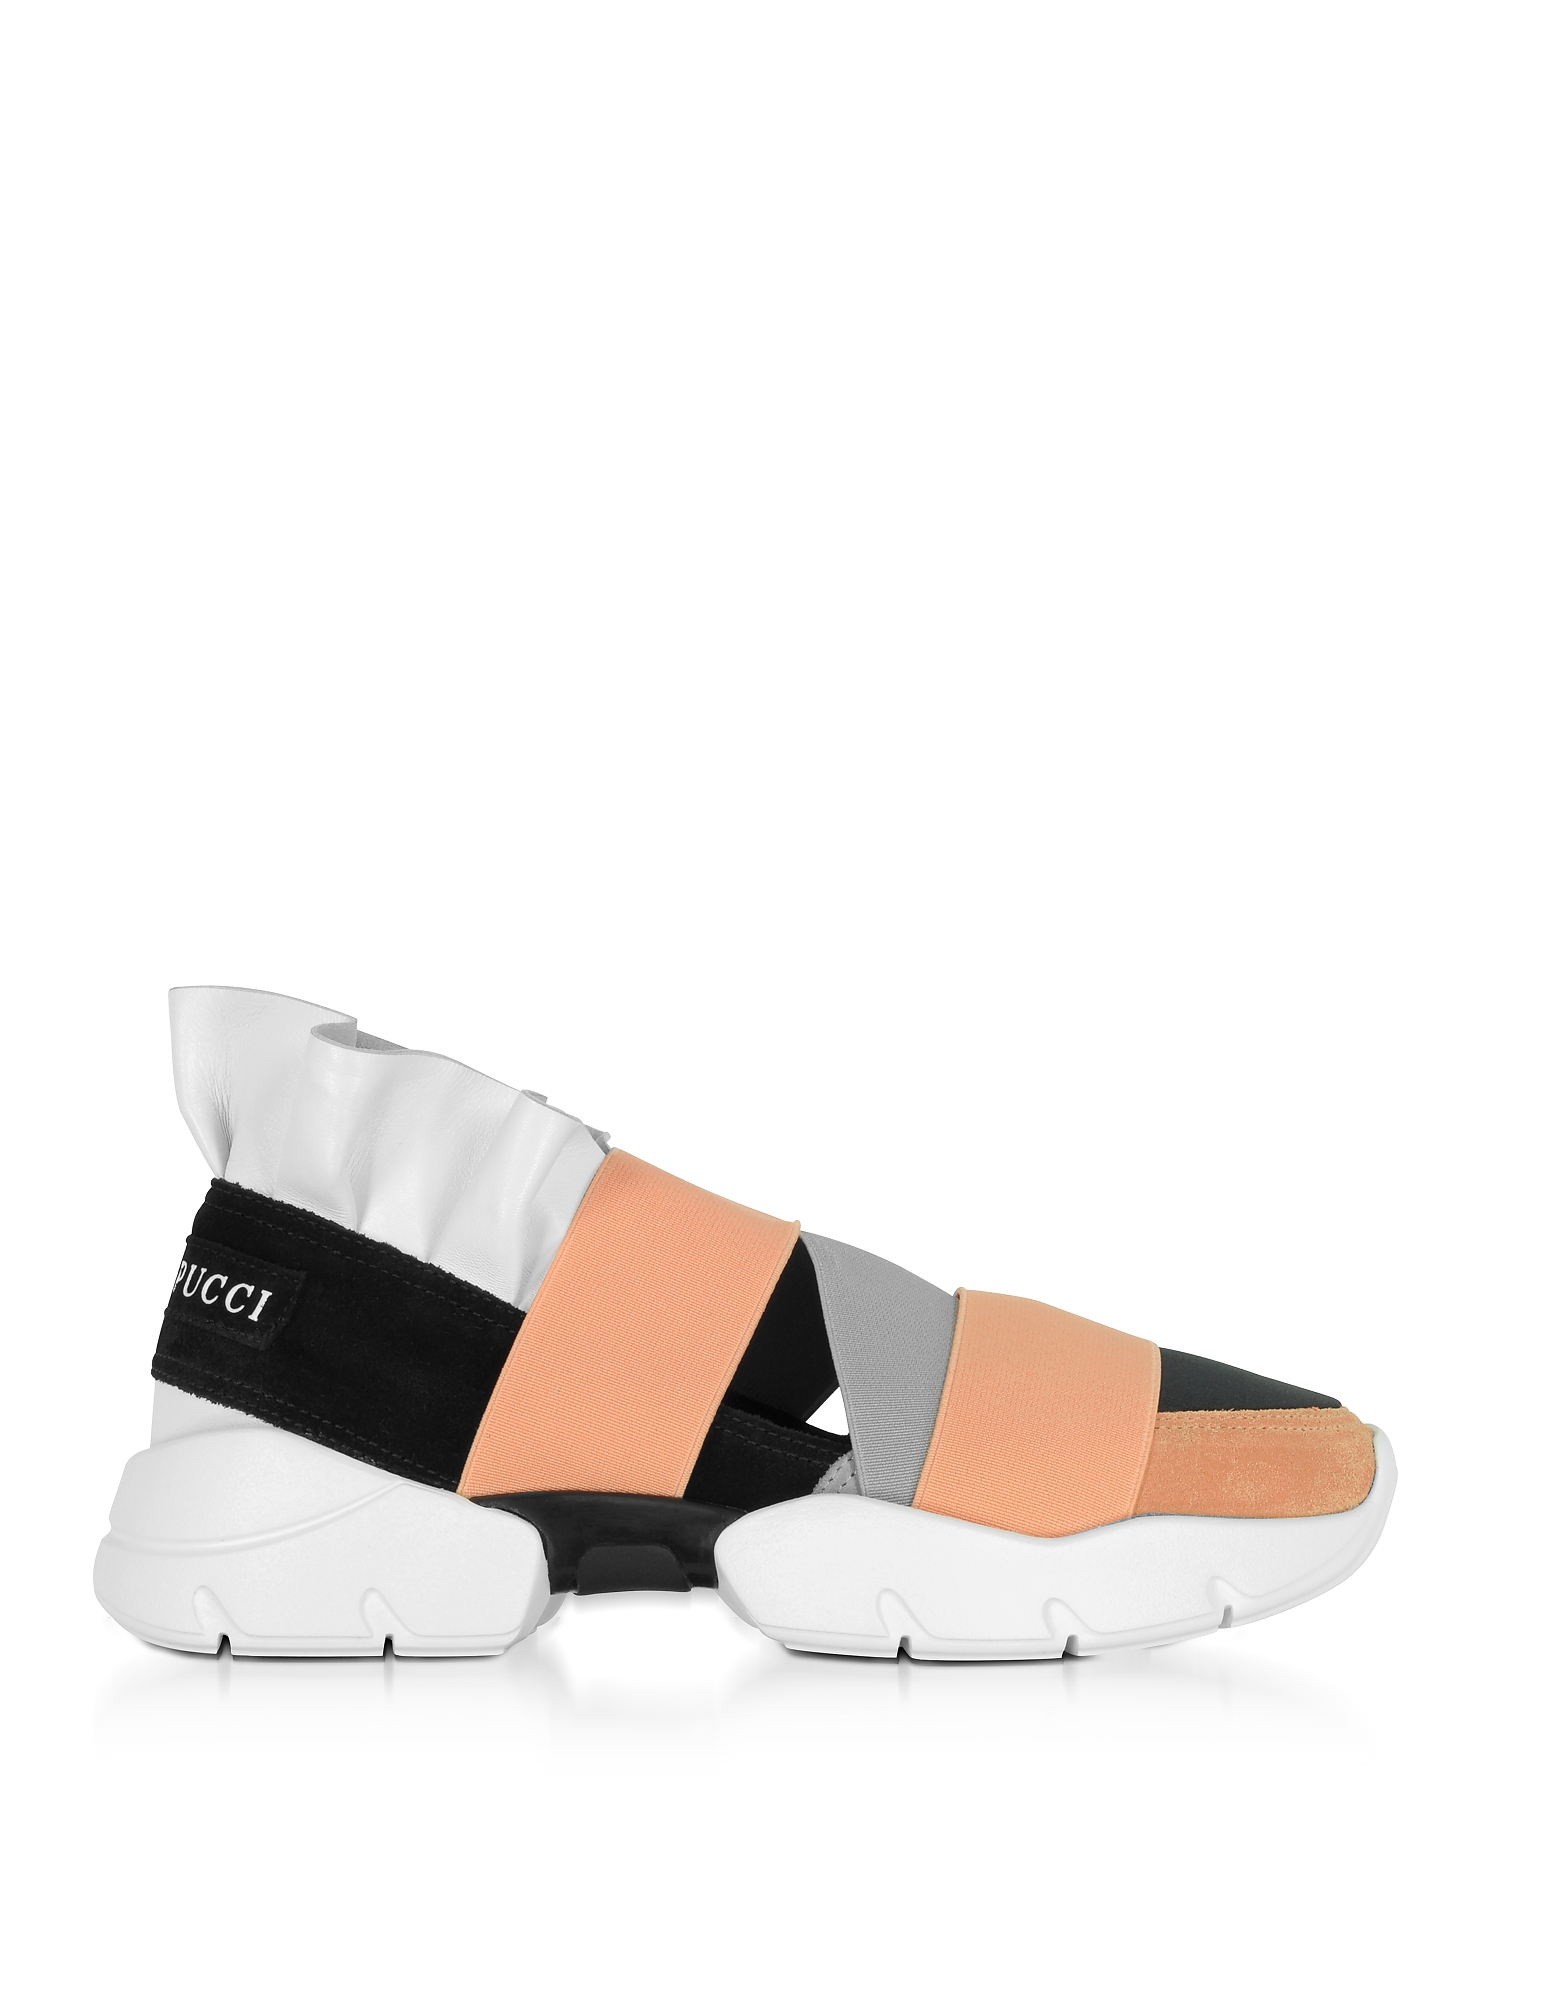 Emilio Pucci Shoes, Multi White, Black and Peach Suede and Leather Ruffle Sneakers